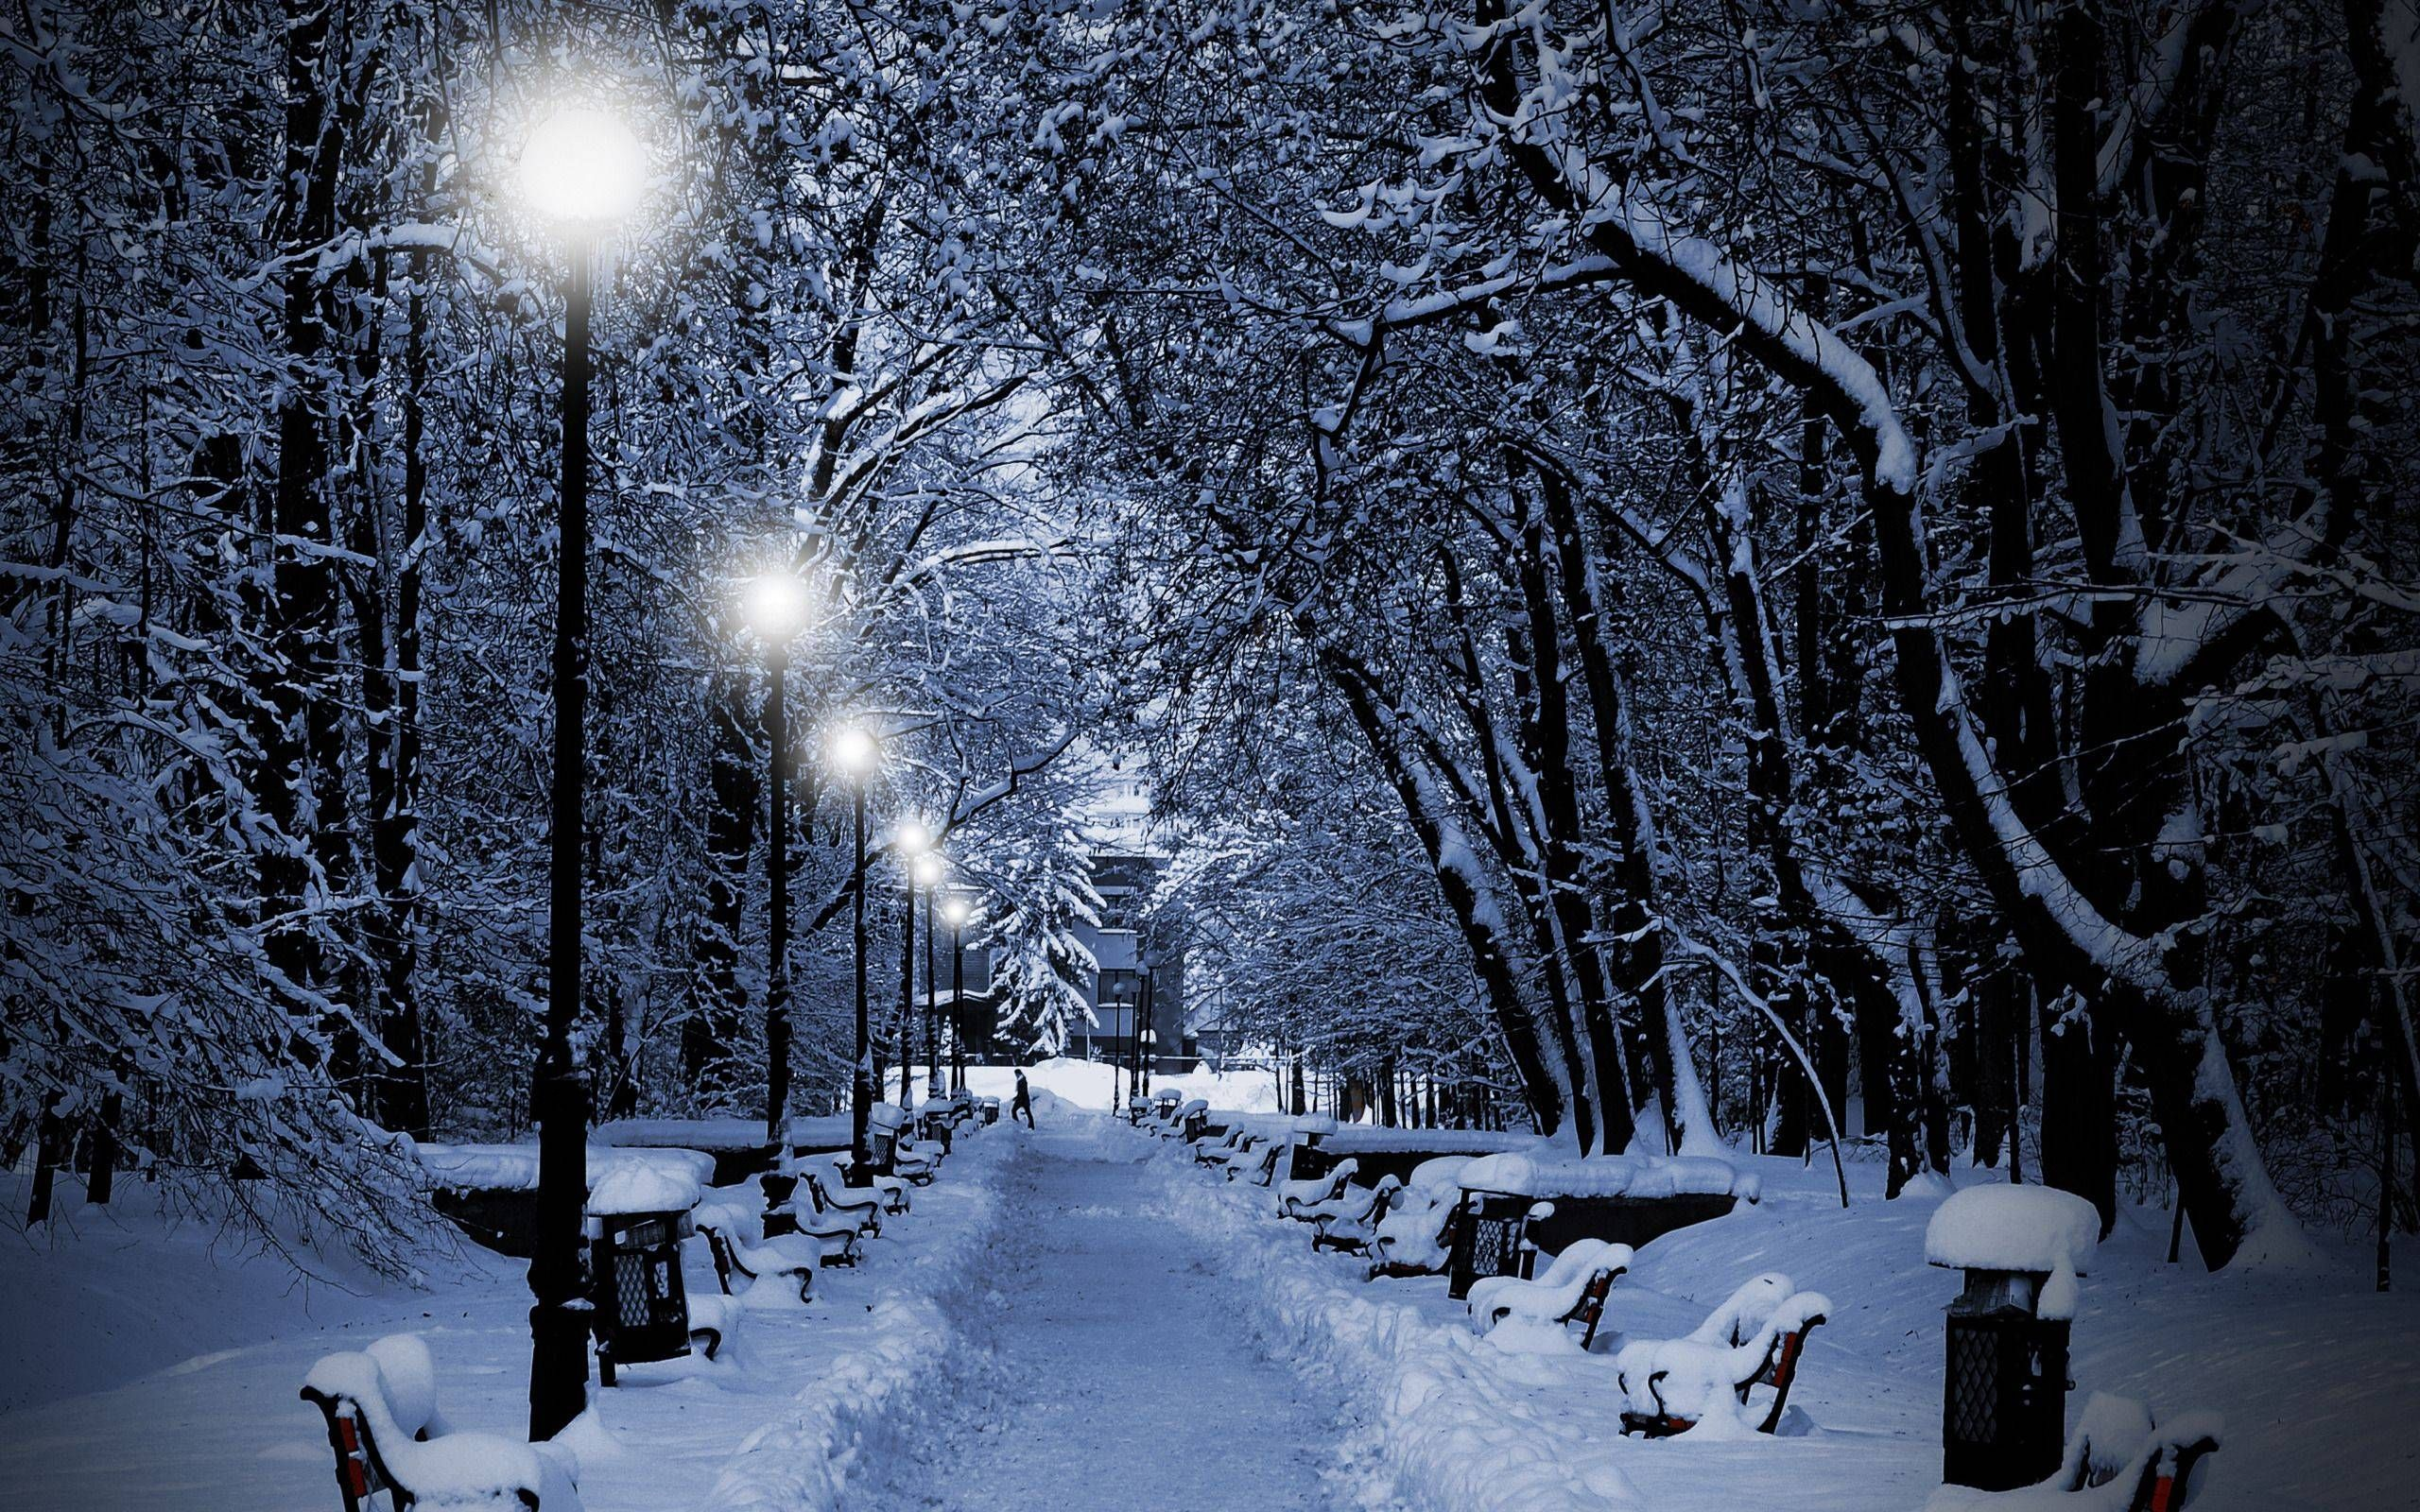 Christmas Snow Wallpaper For Android Is 4k Wallpaper Winter Scenery Winter Wallpaper Winter Pictures